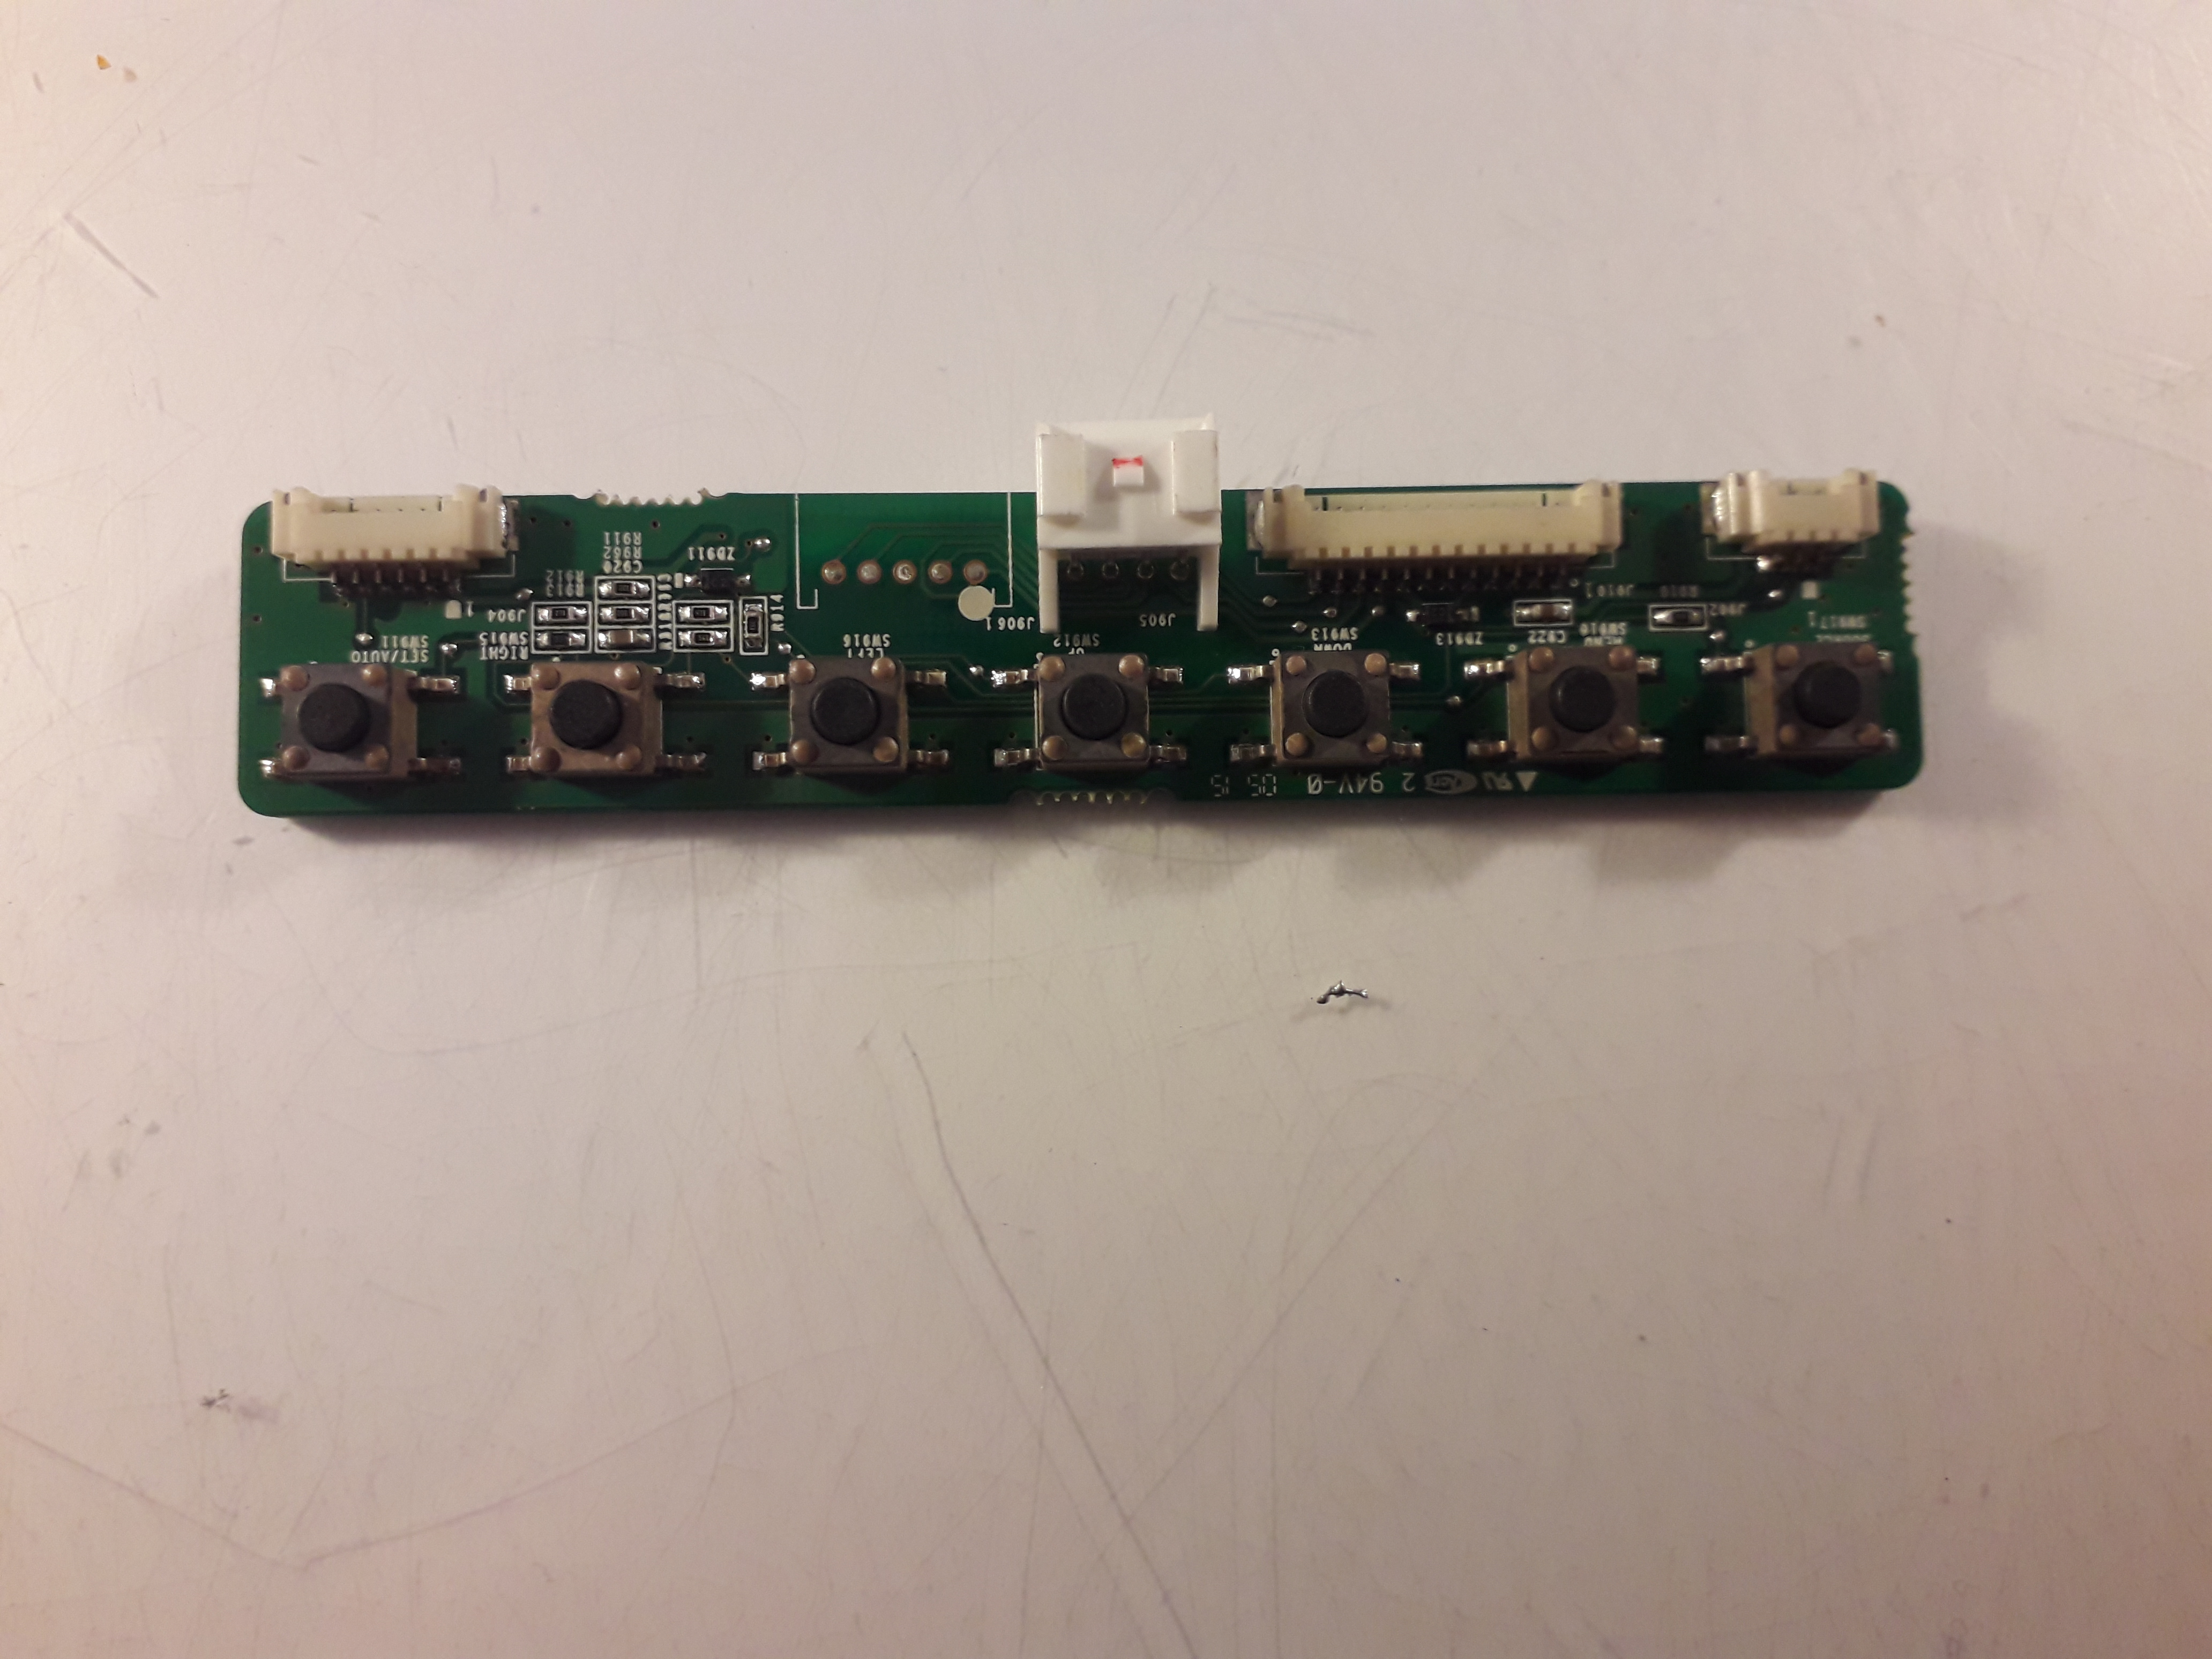 Details about 6870TA79A14 IR REMOTE CONTROL SENSOR FOR LG M1510AB